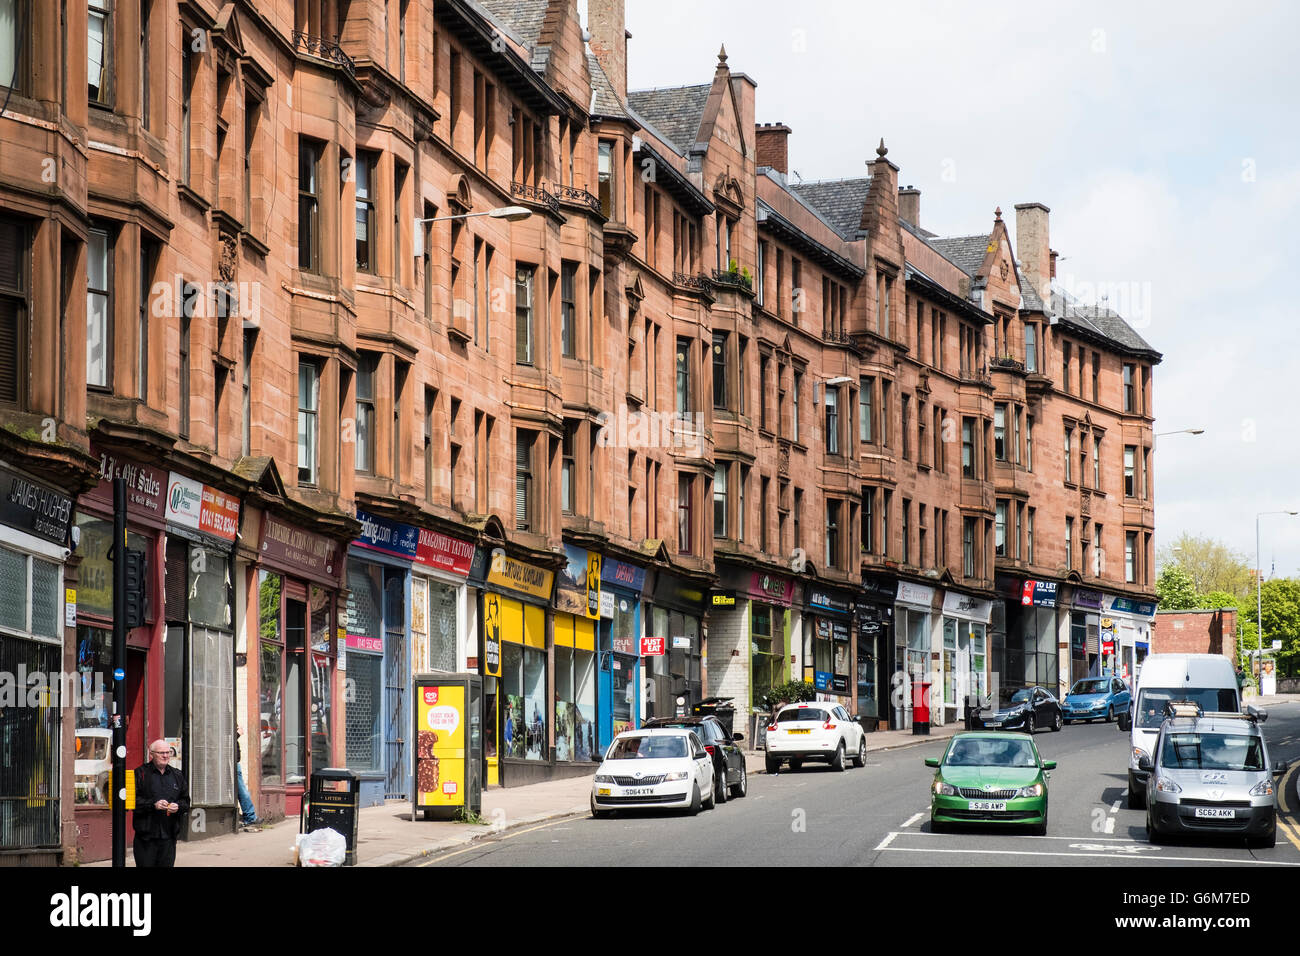 View along High Street with traditional sandstone tenement apartment buildings  in East End of Glasgow, Scotland, - Stock Image